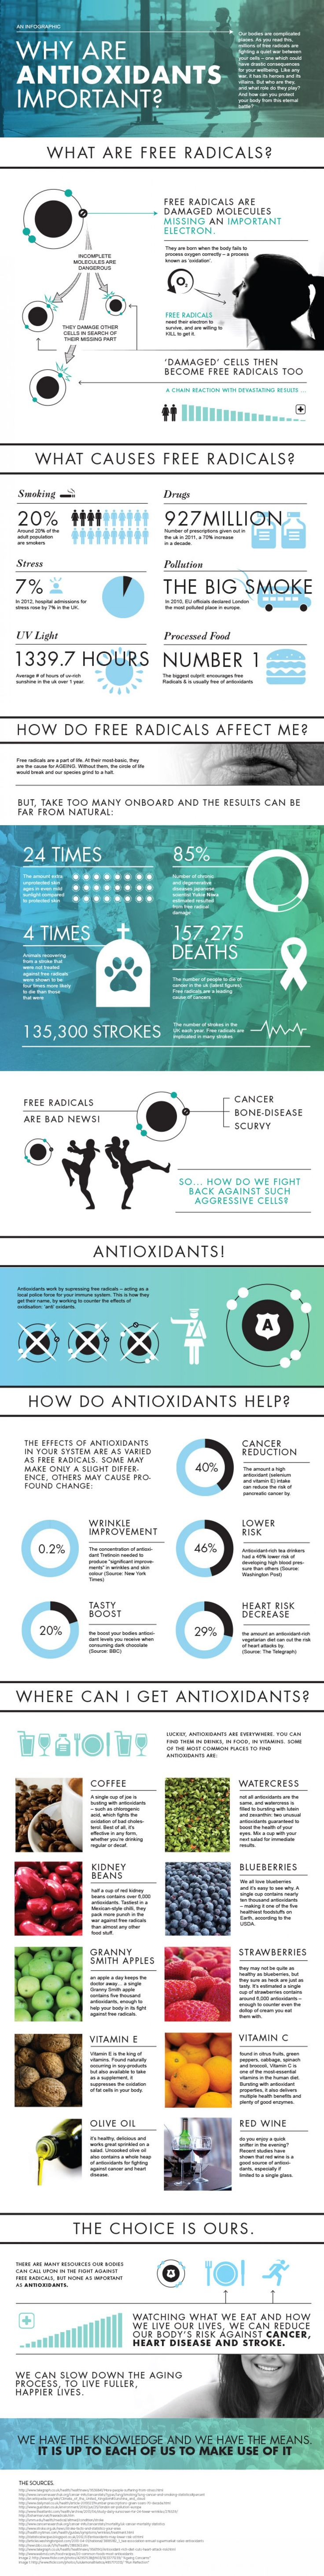 Why Are Antioxidants Important? An Infographic for your health!